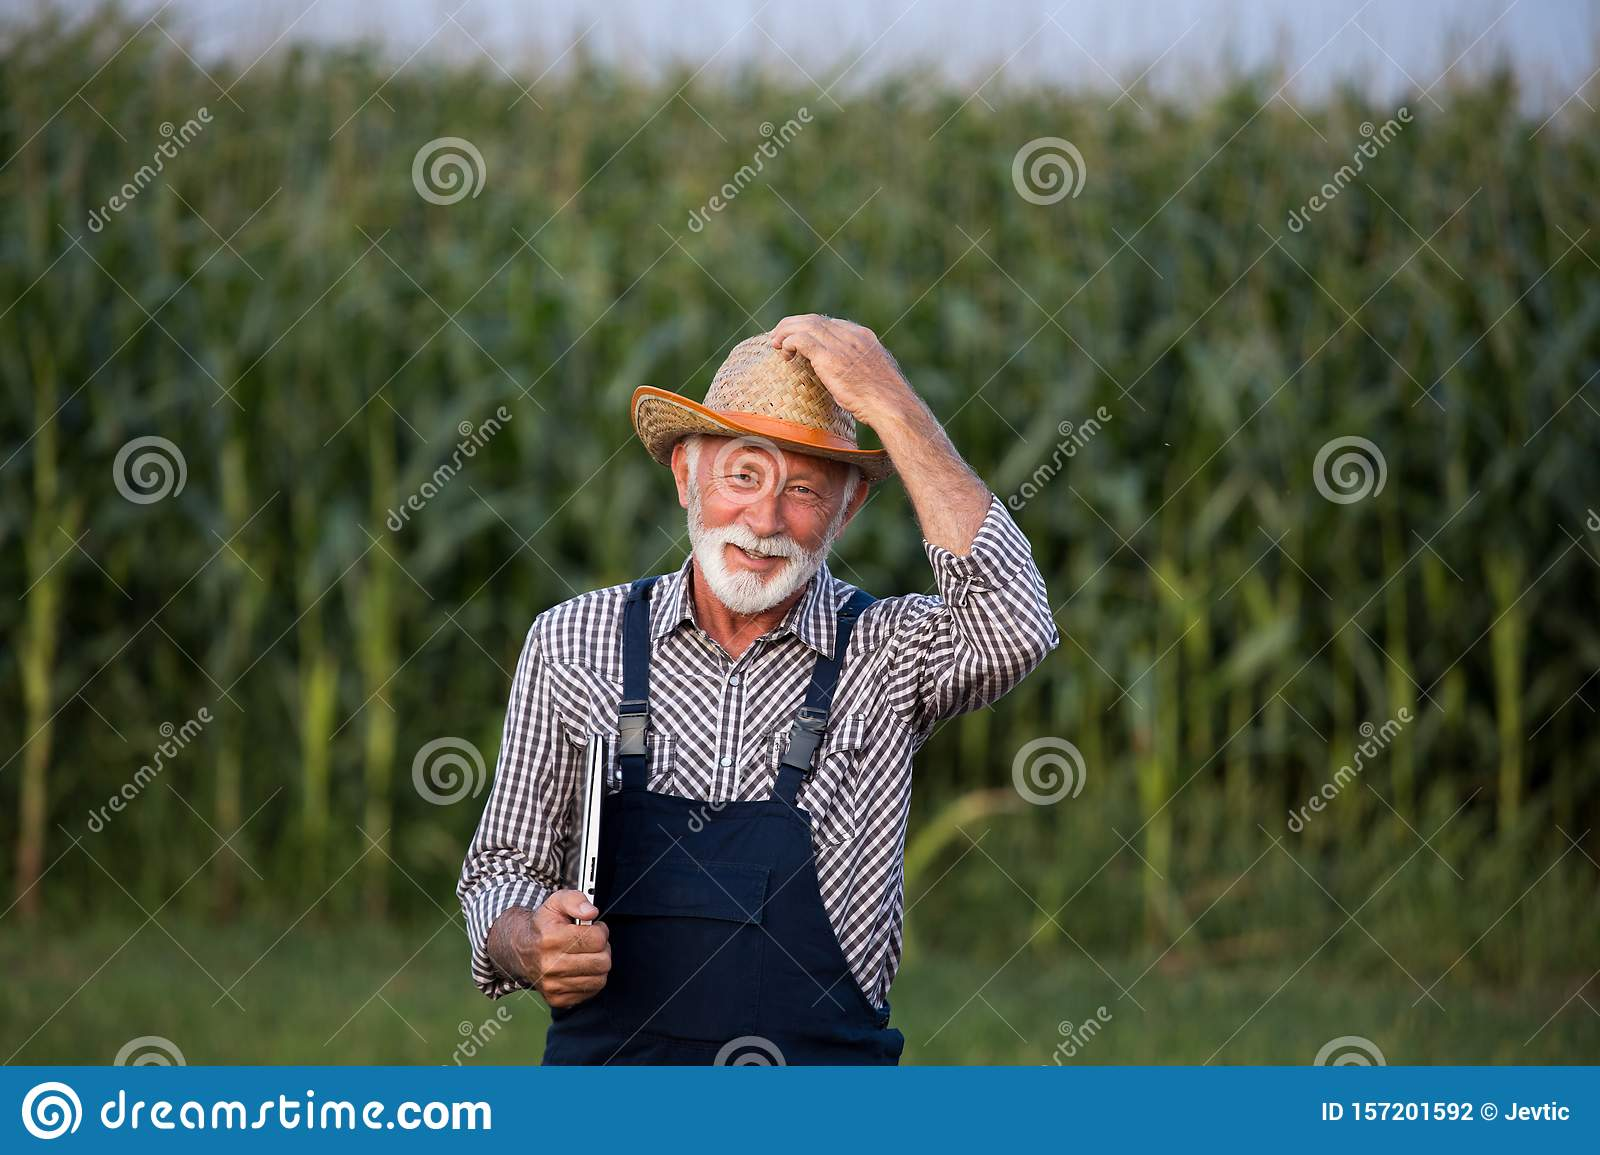 Old Young In The Farm Porn Videogalleries portrait of old farmer with white beard stock photo - image